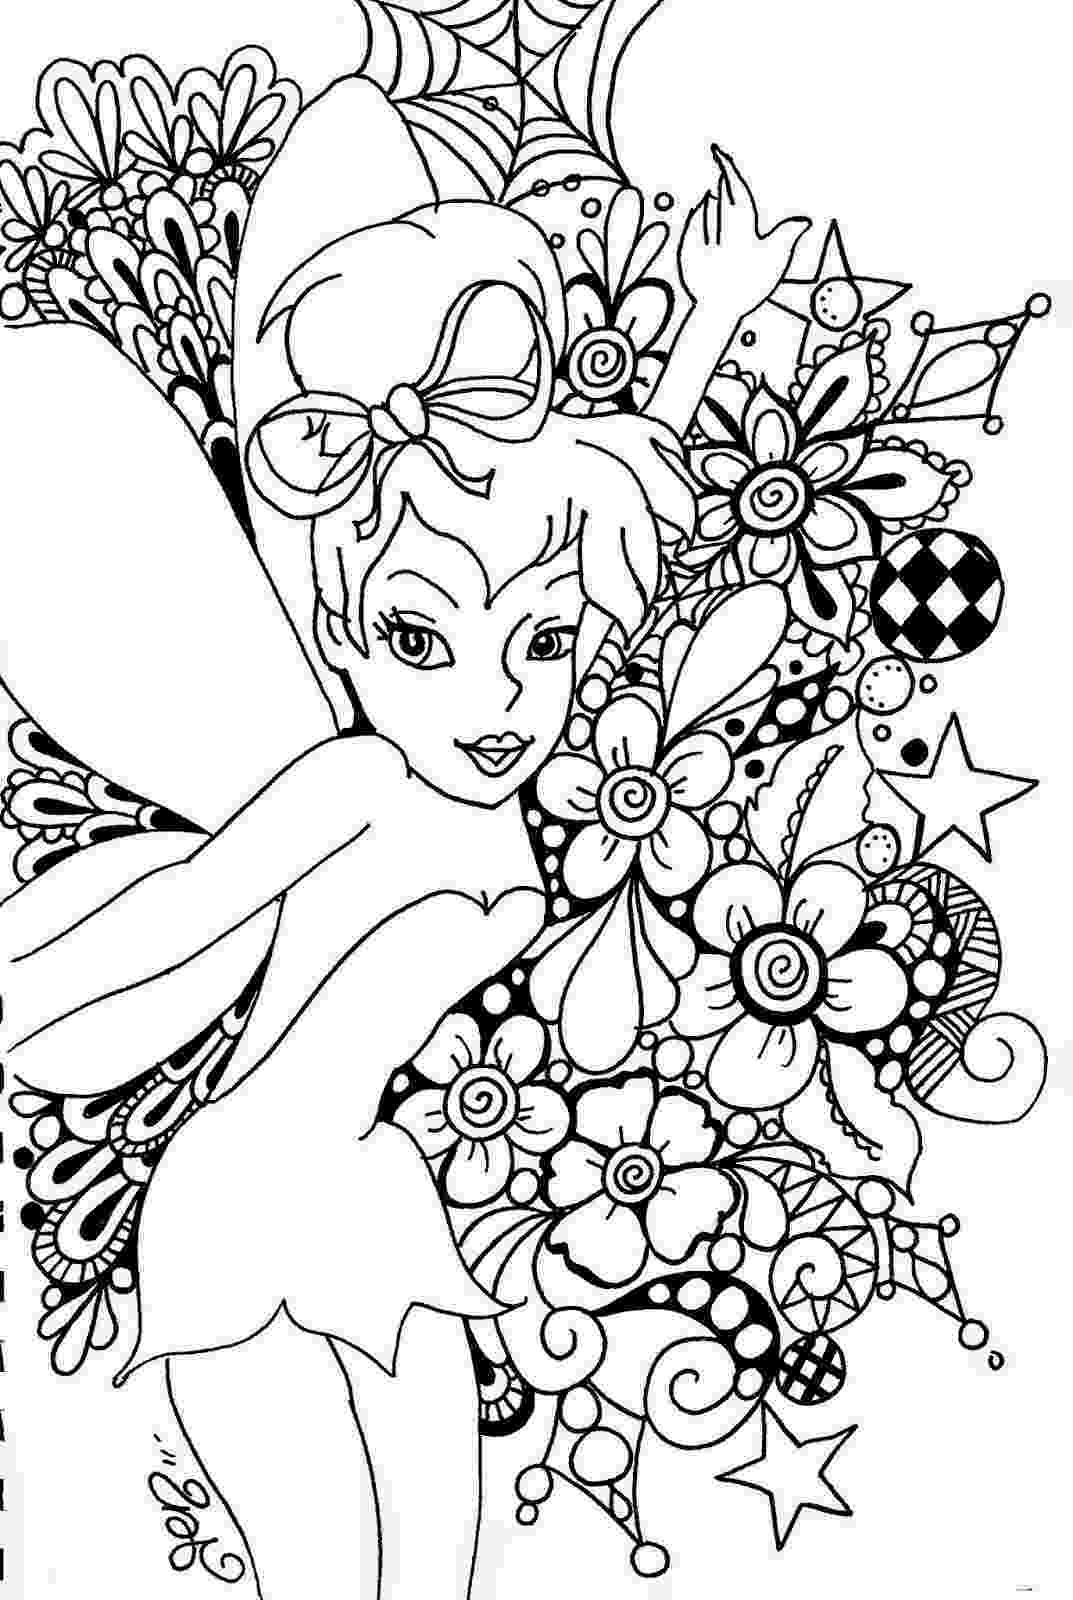 tinker bell coloring pages coloring pages tinkerbell coloring pages and clip art bell tinker coloring pages